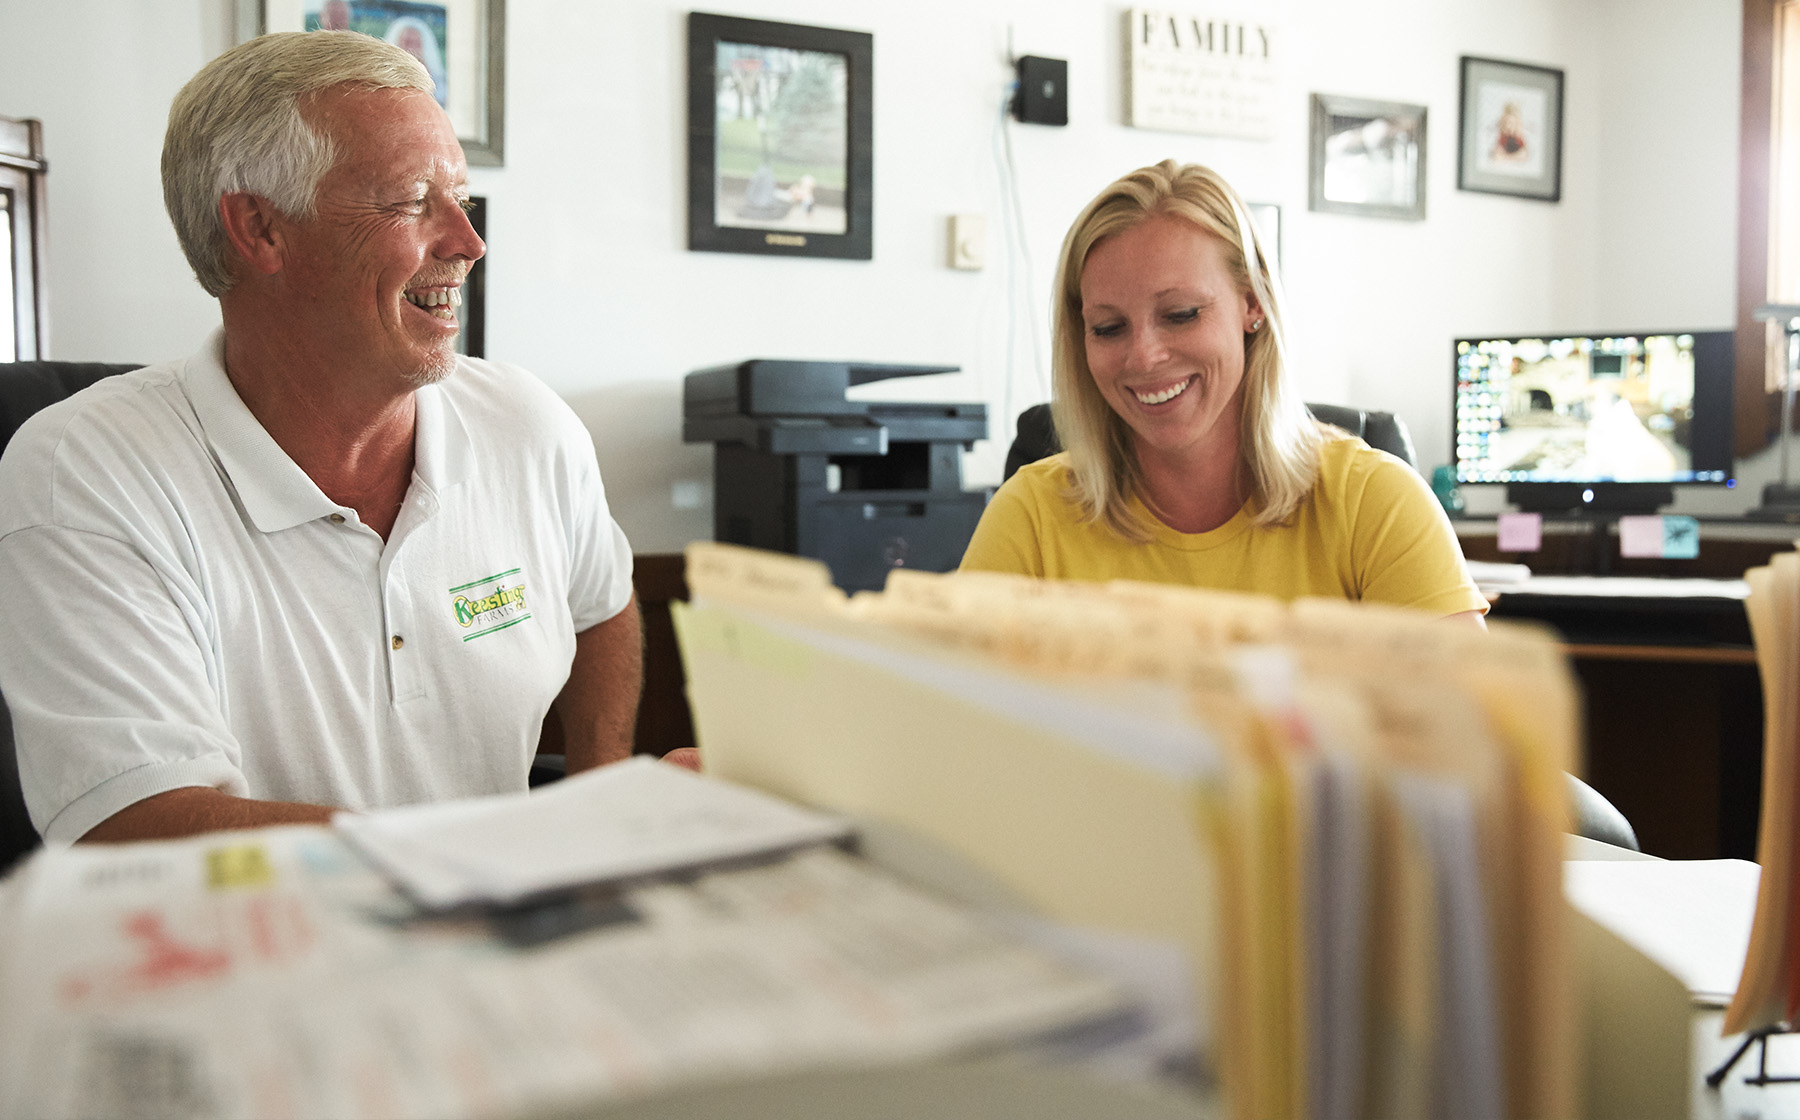 Image of Keesling Farms Growers for Red Gold Tomatoes David and daughter Kaycie in farm office